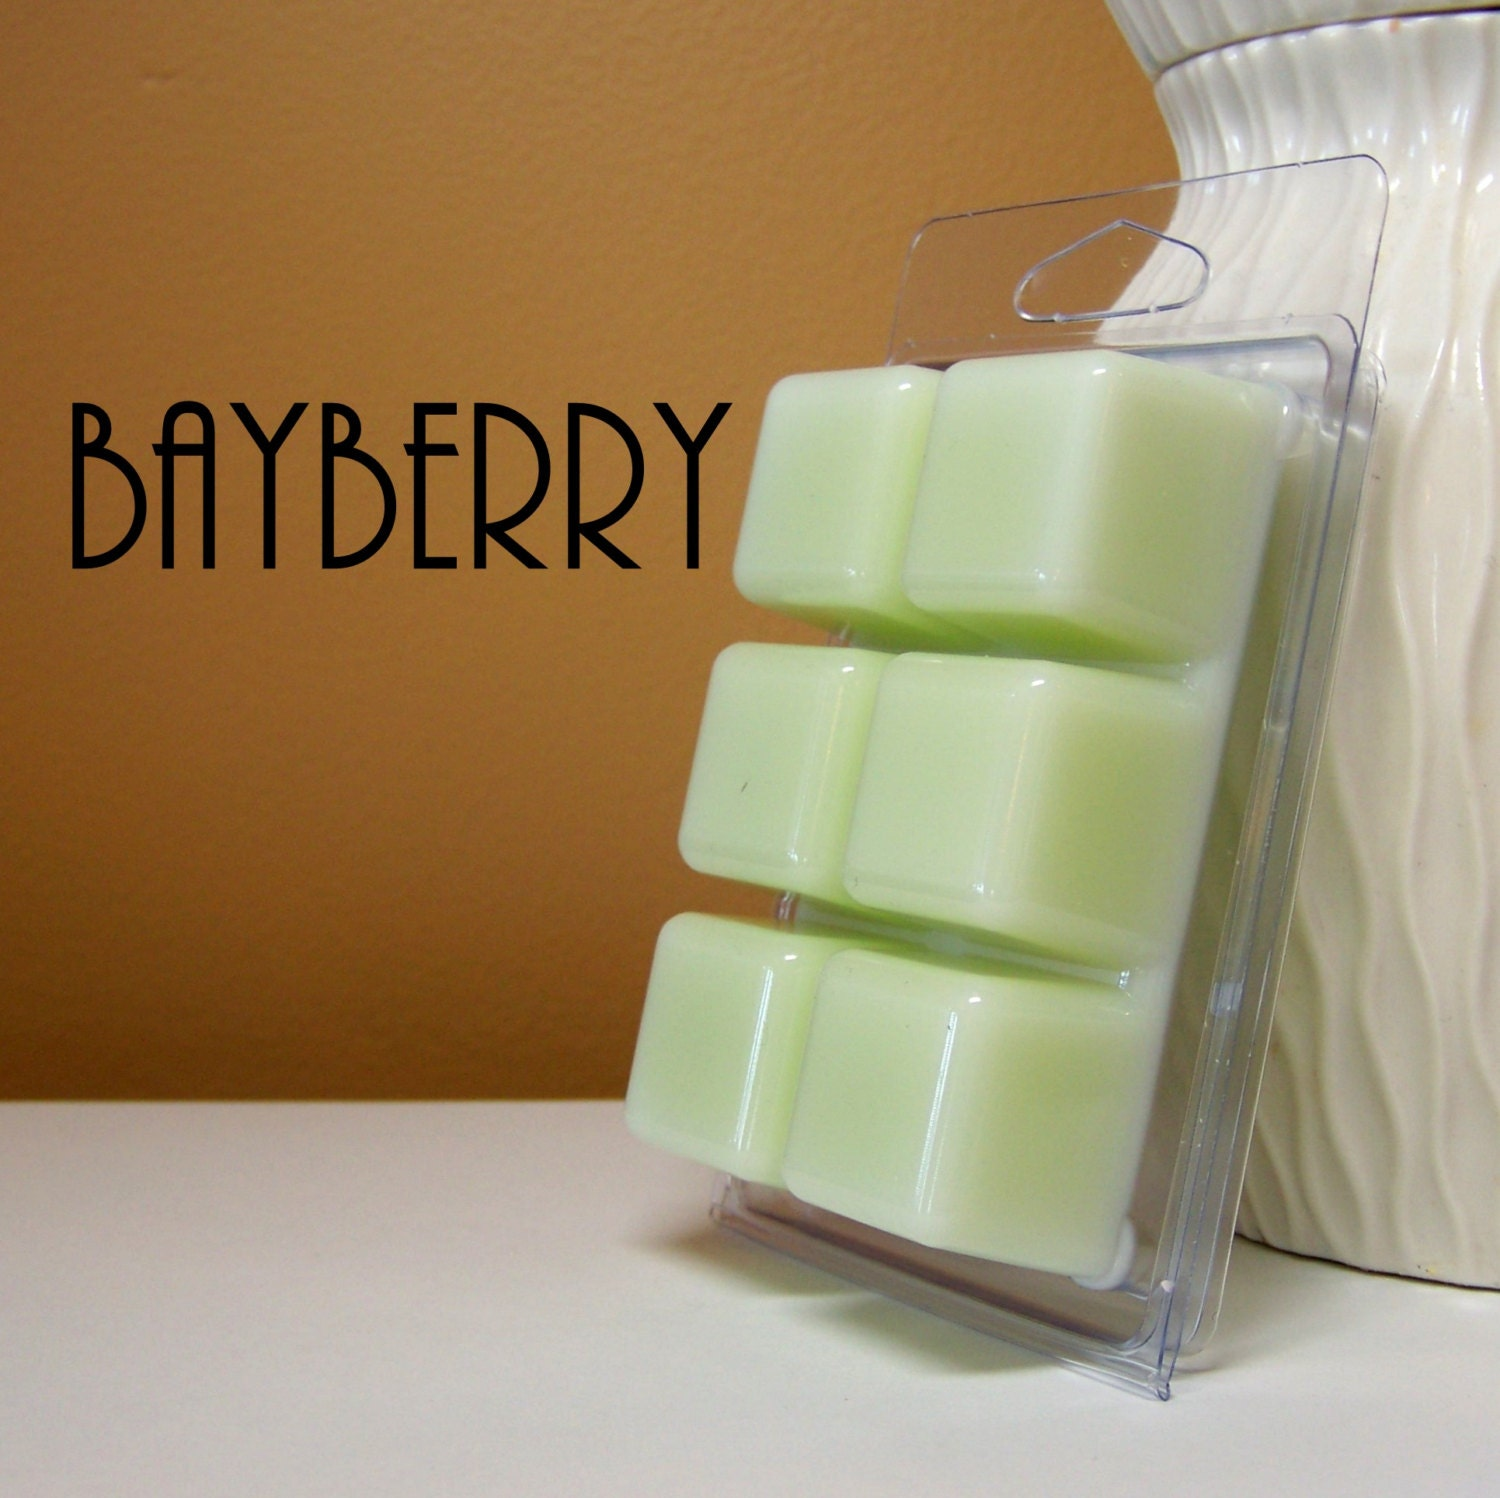 Bayberry Scented Wax Melts Christmas Wax by StillW